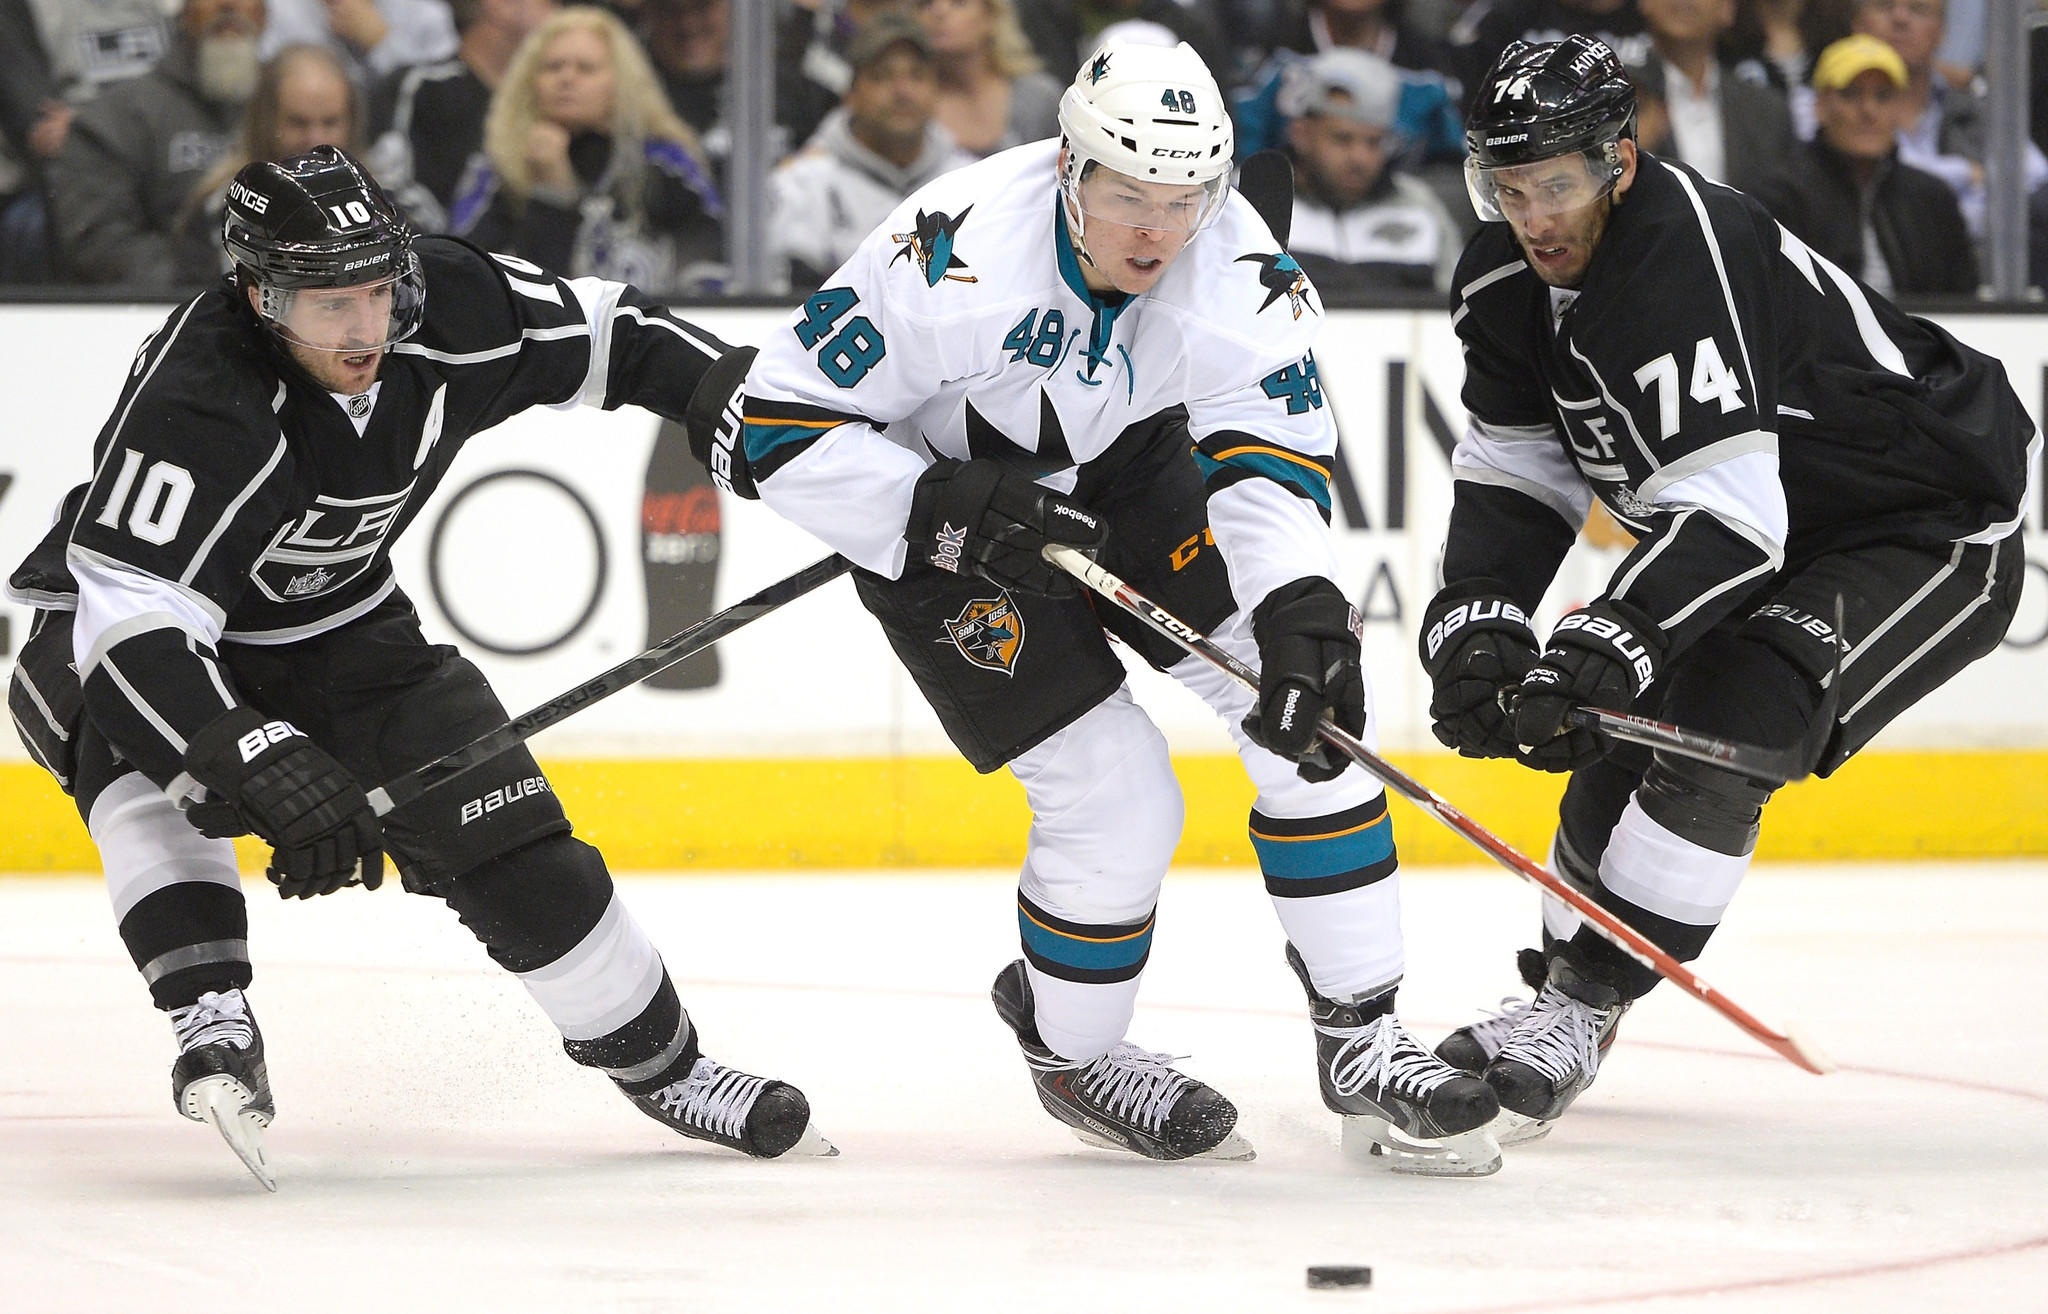 San Jose Sharks forward Tomas Hertl, center, controls the puck between Kings forwards Mike Richards, left, and Dwight King during the Kings' loss in Game 3 of the Western Conference quarterfinals Tuesday. The Kings played better in Game 3, but they still didn't win.